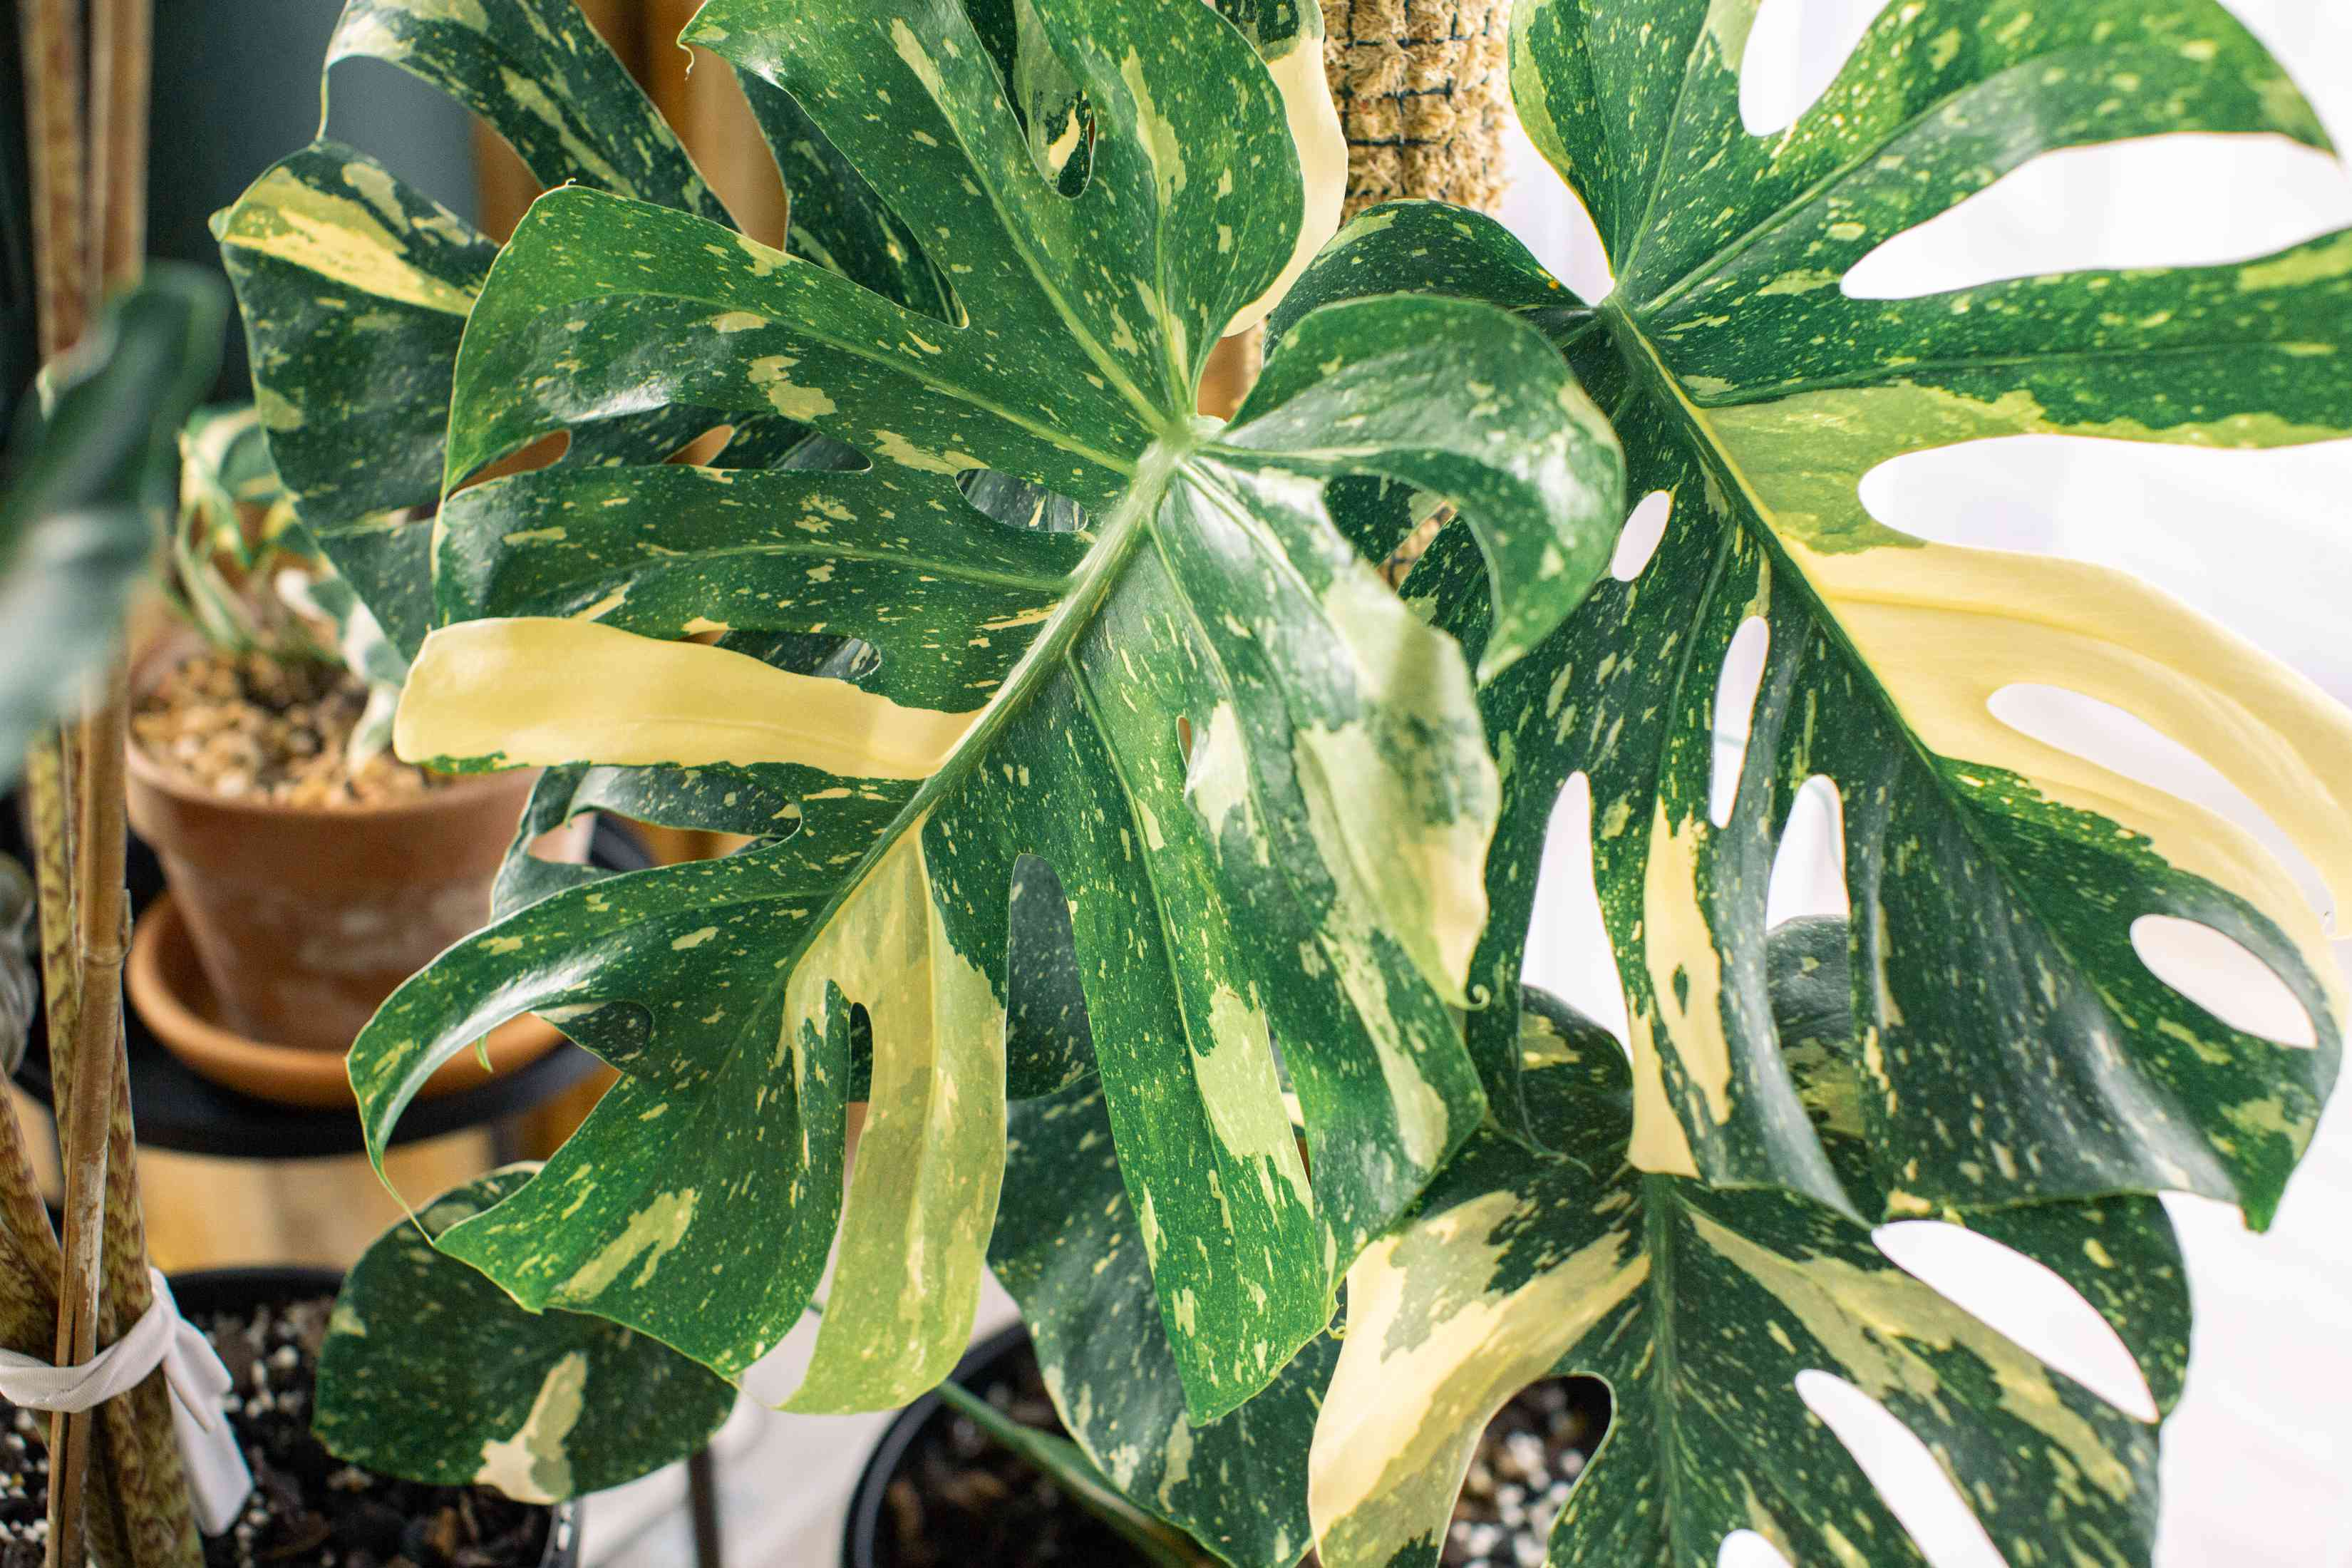 Monstera deliciosa 'Variegata' plant with white and green splotches on leaves closeup